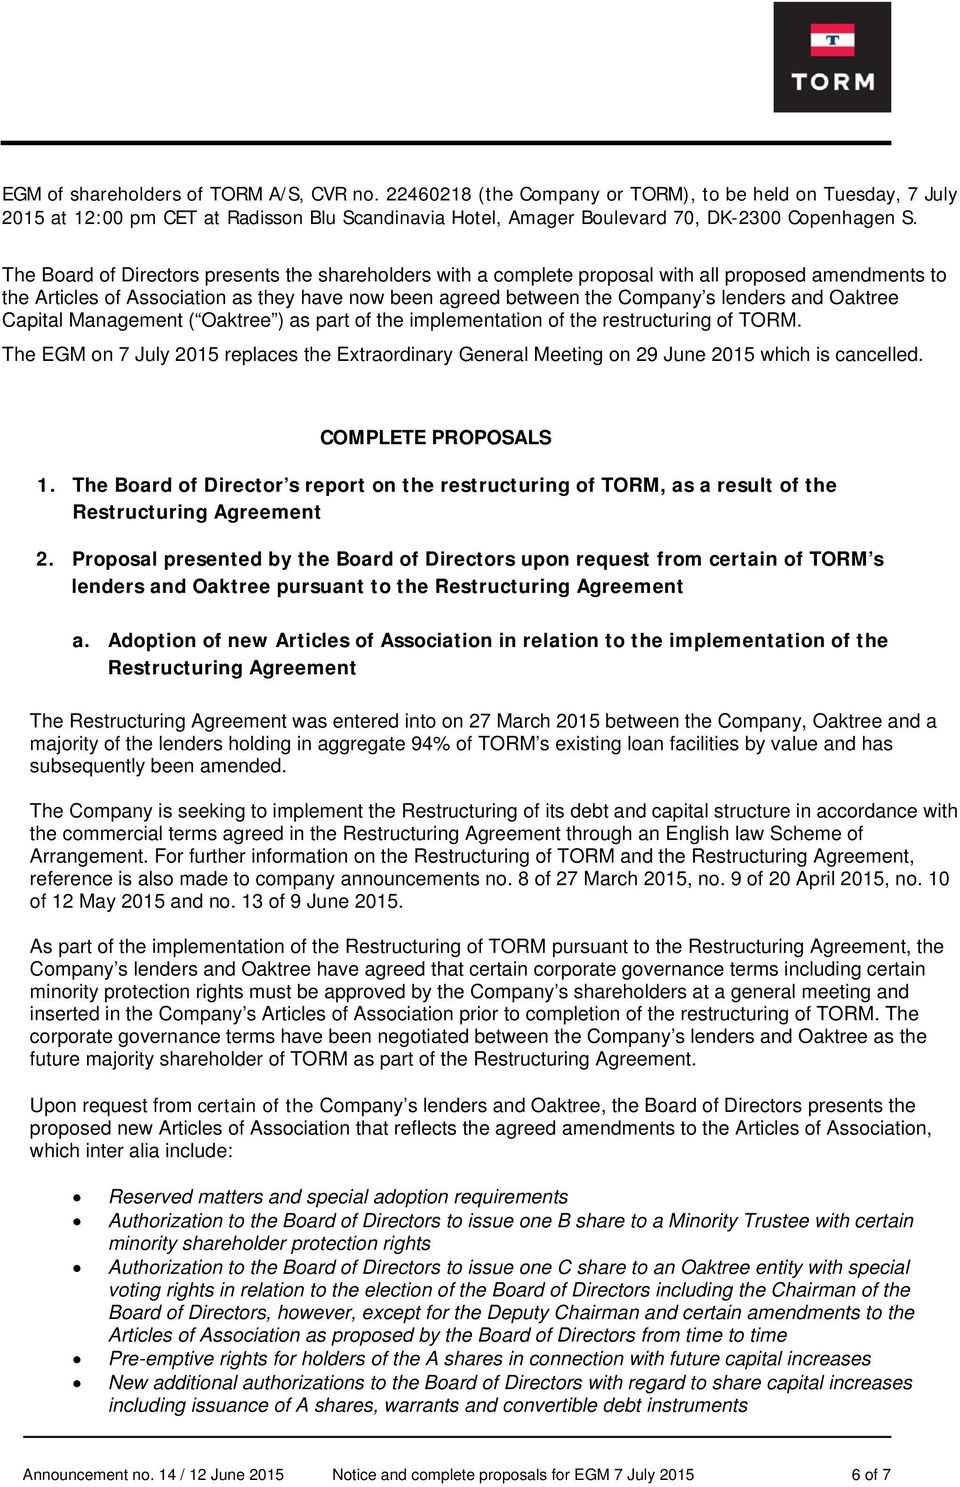 The Board of Directors presents the shareholders with a complete proposal with all proposed amendments to the Articles of Association as they have now been agreed between the Company s lenders and